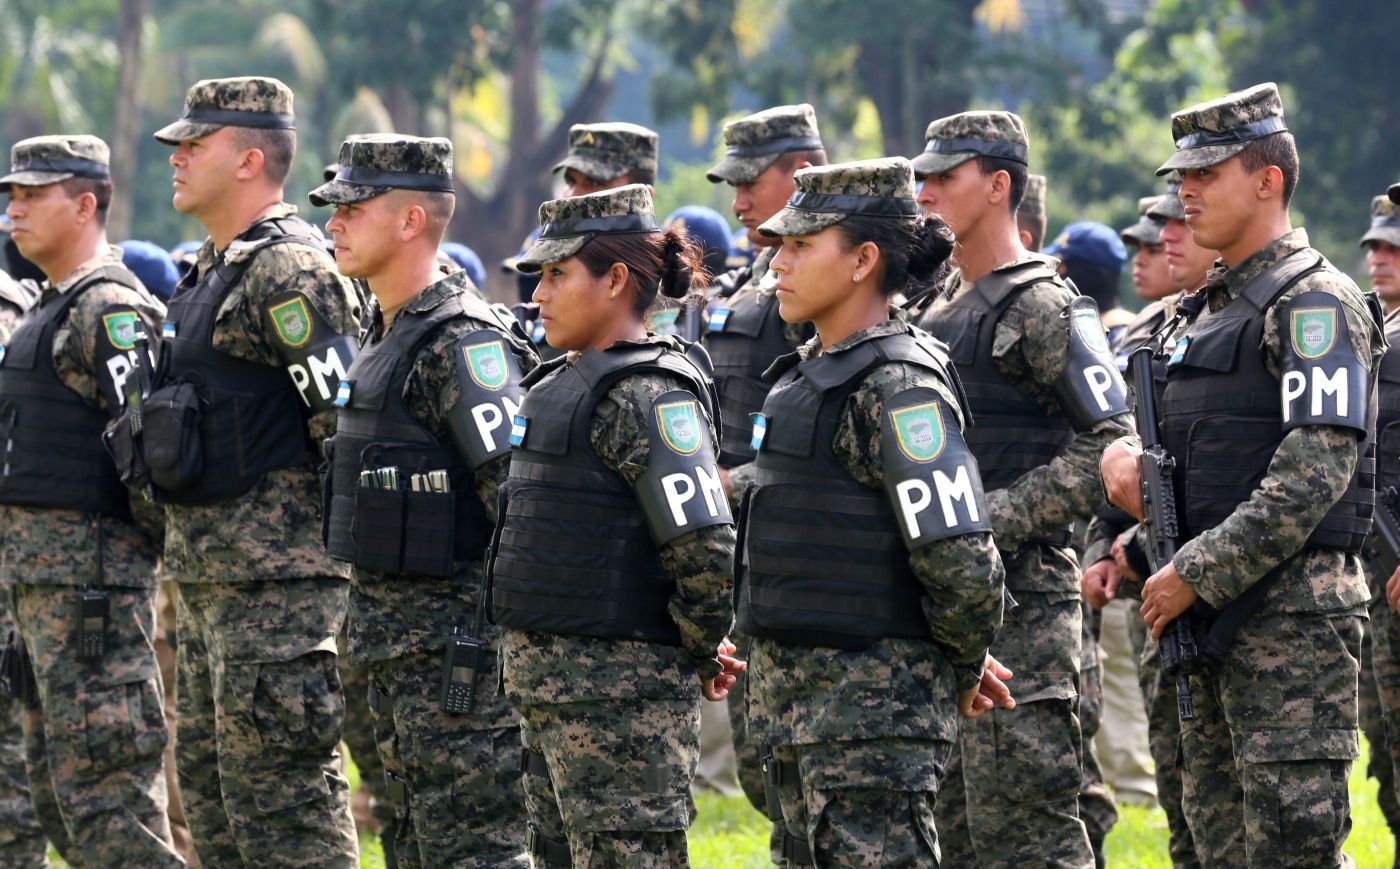 Elite FUSINA Force Credited For Drop in Honduras Homicides